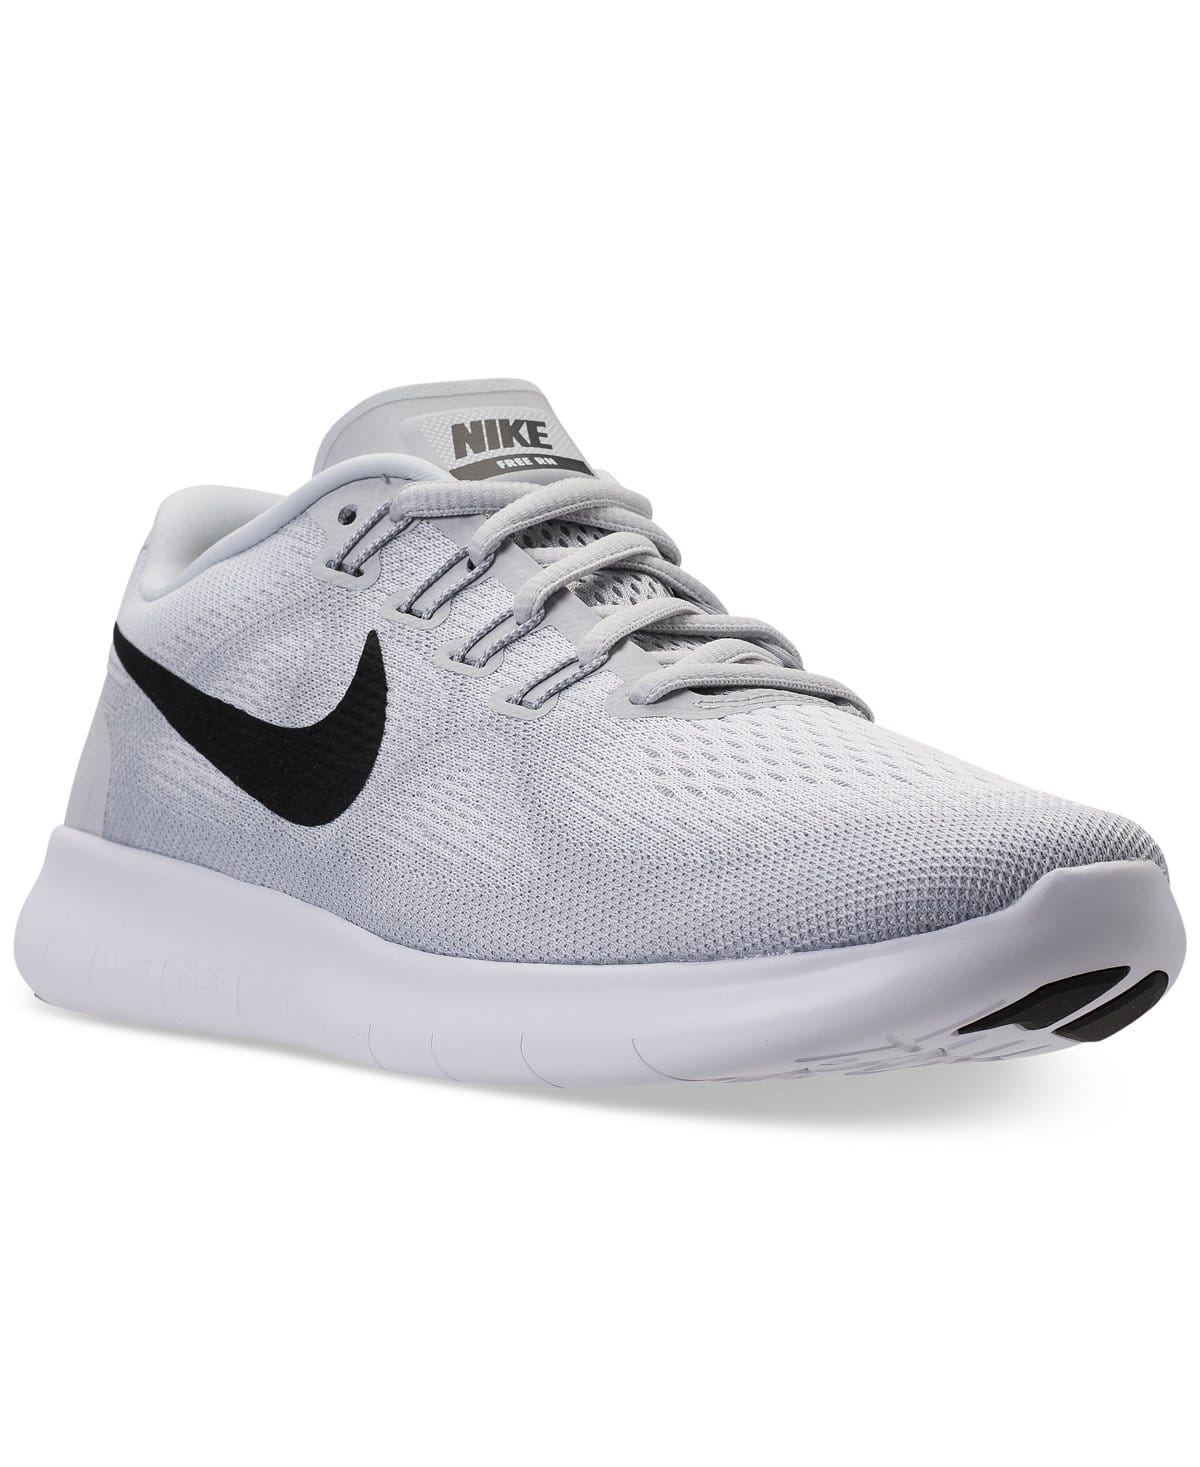 43491d5555 Nike Free Run 2017 Shoes: Women's from $45, Men's from - Slickdeals.net